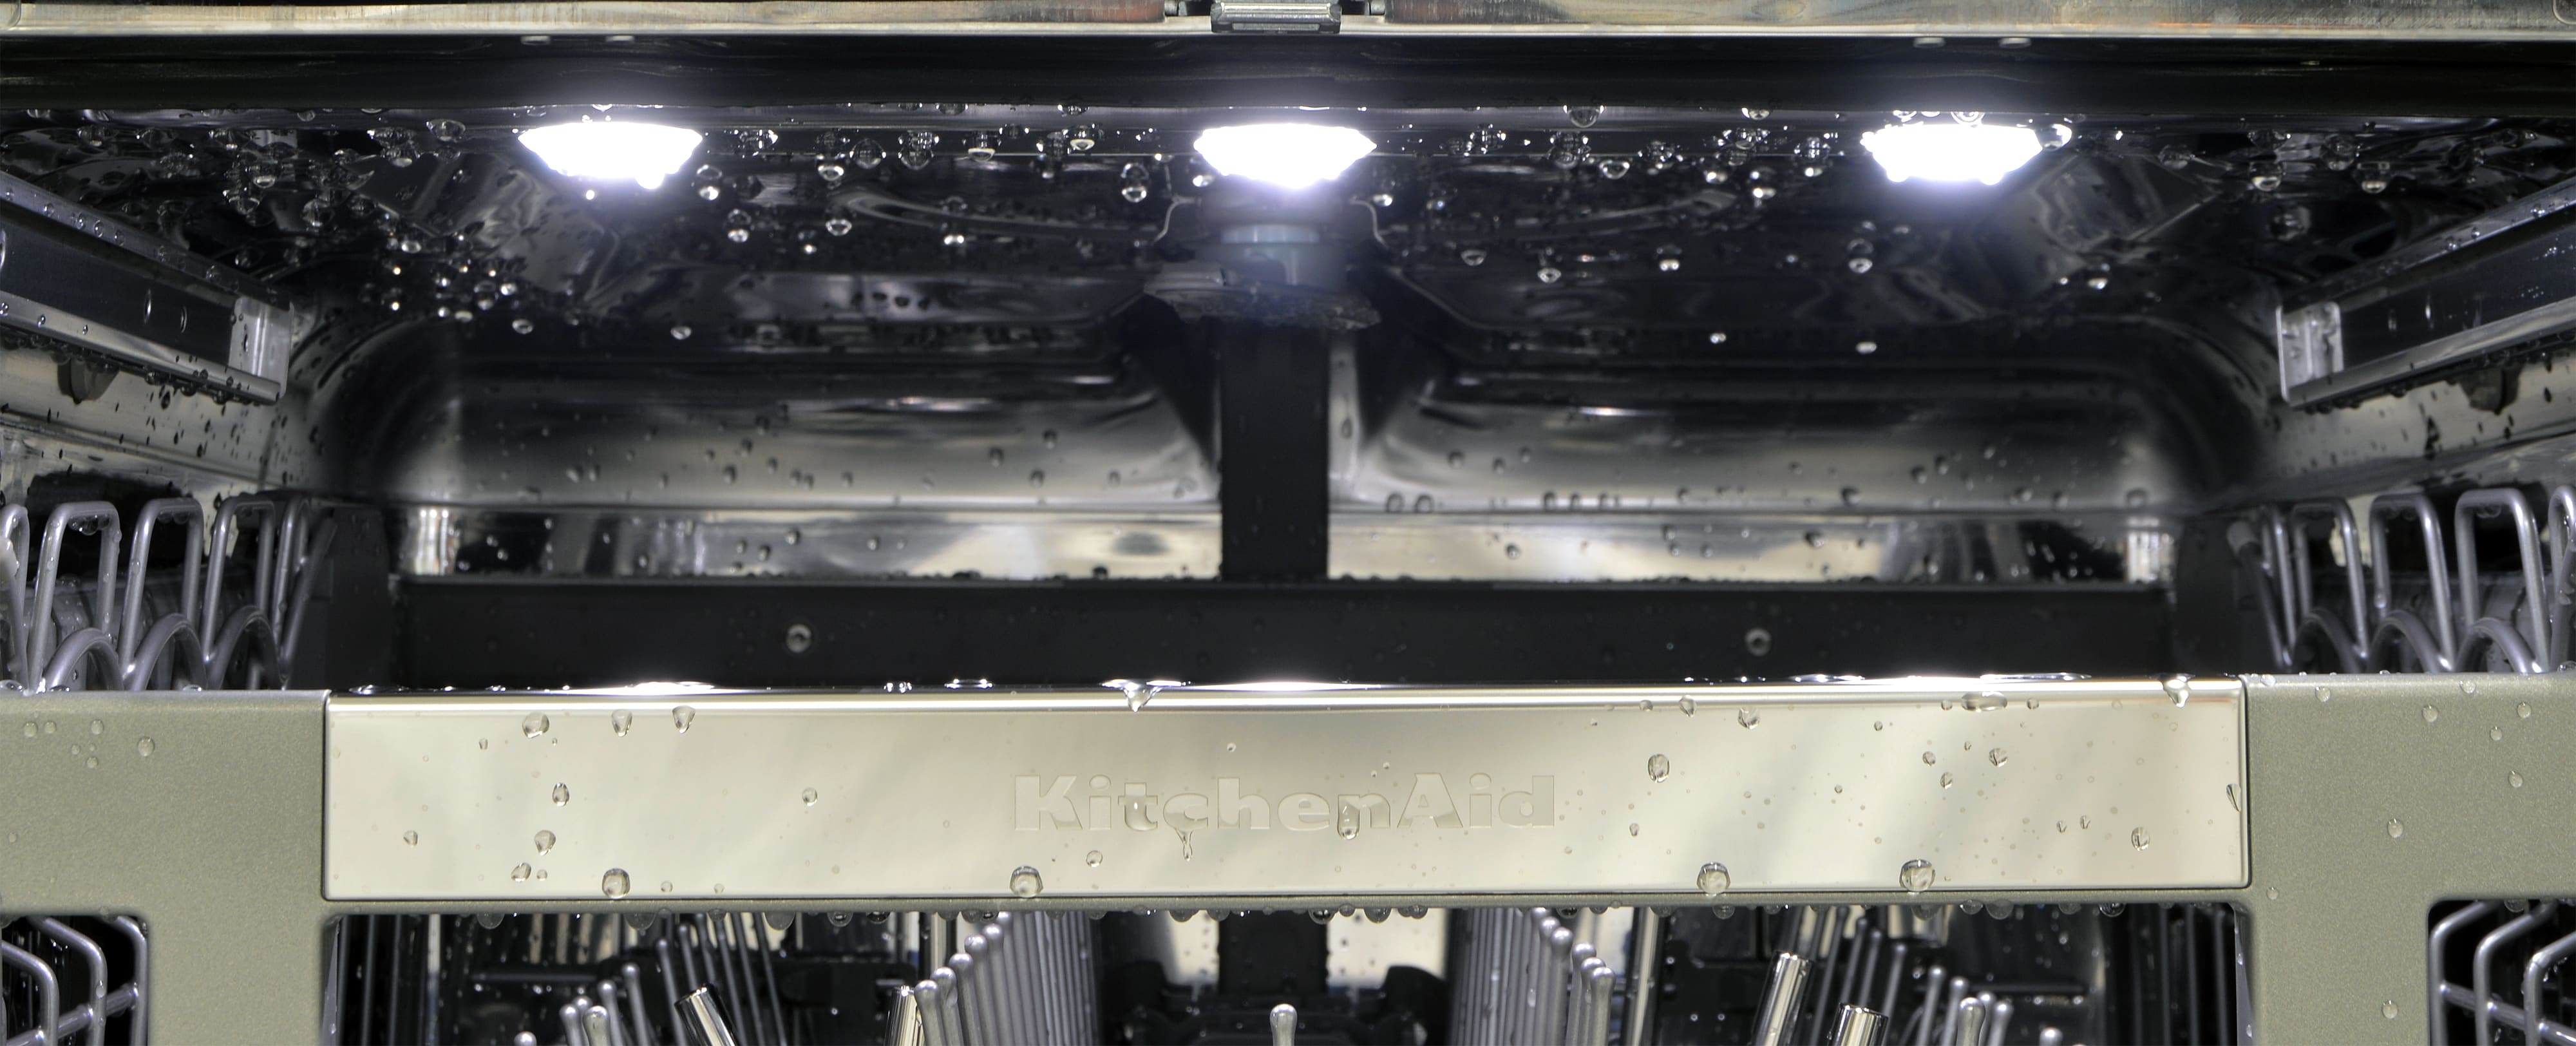 Row of interior lights in the ceiling of the dishwasher